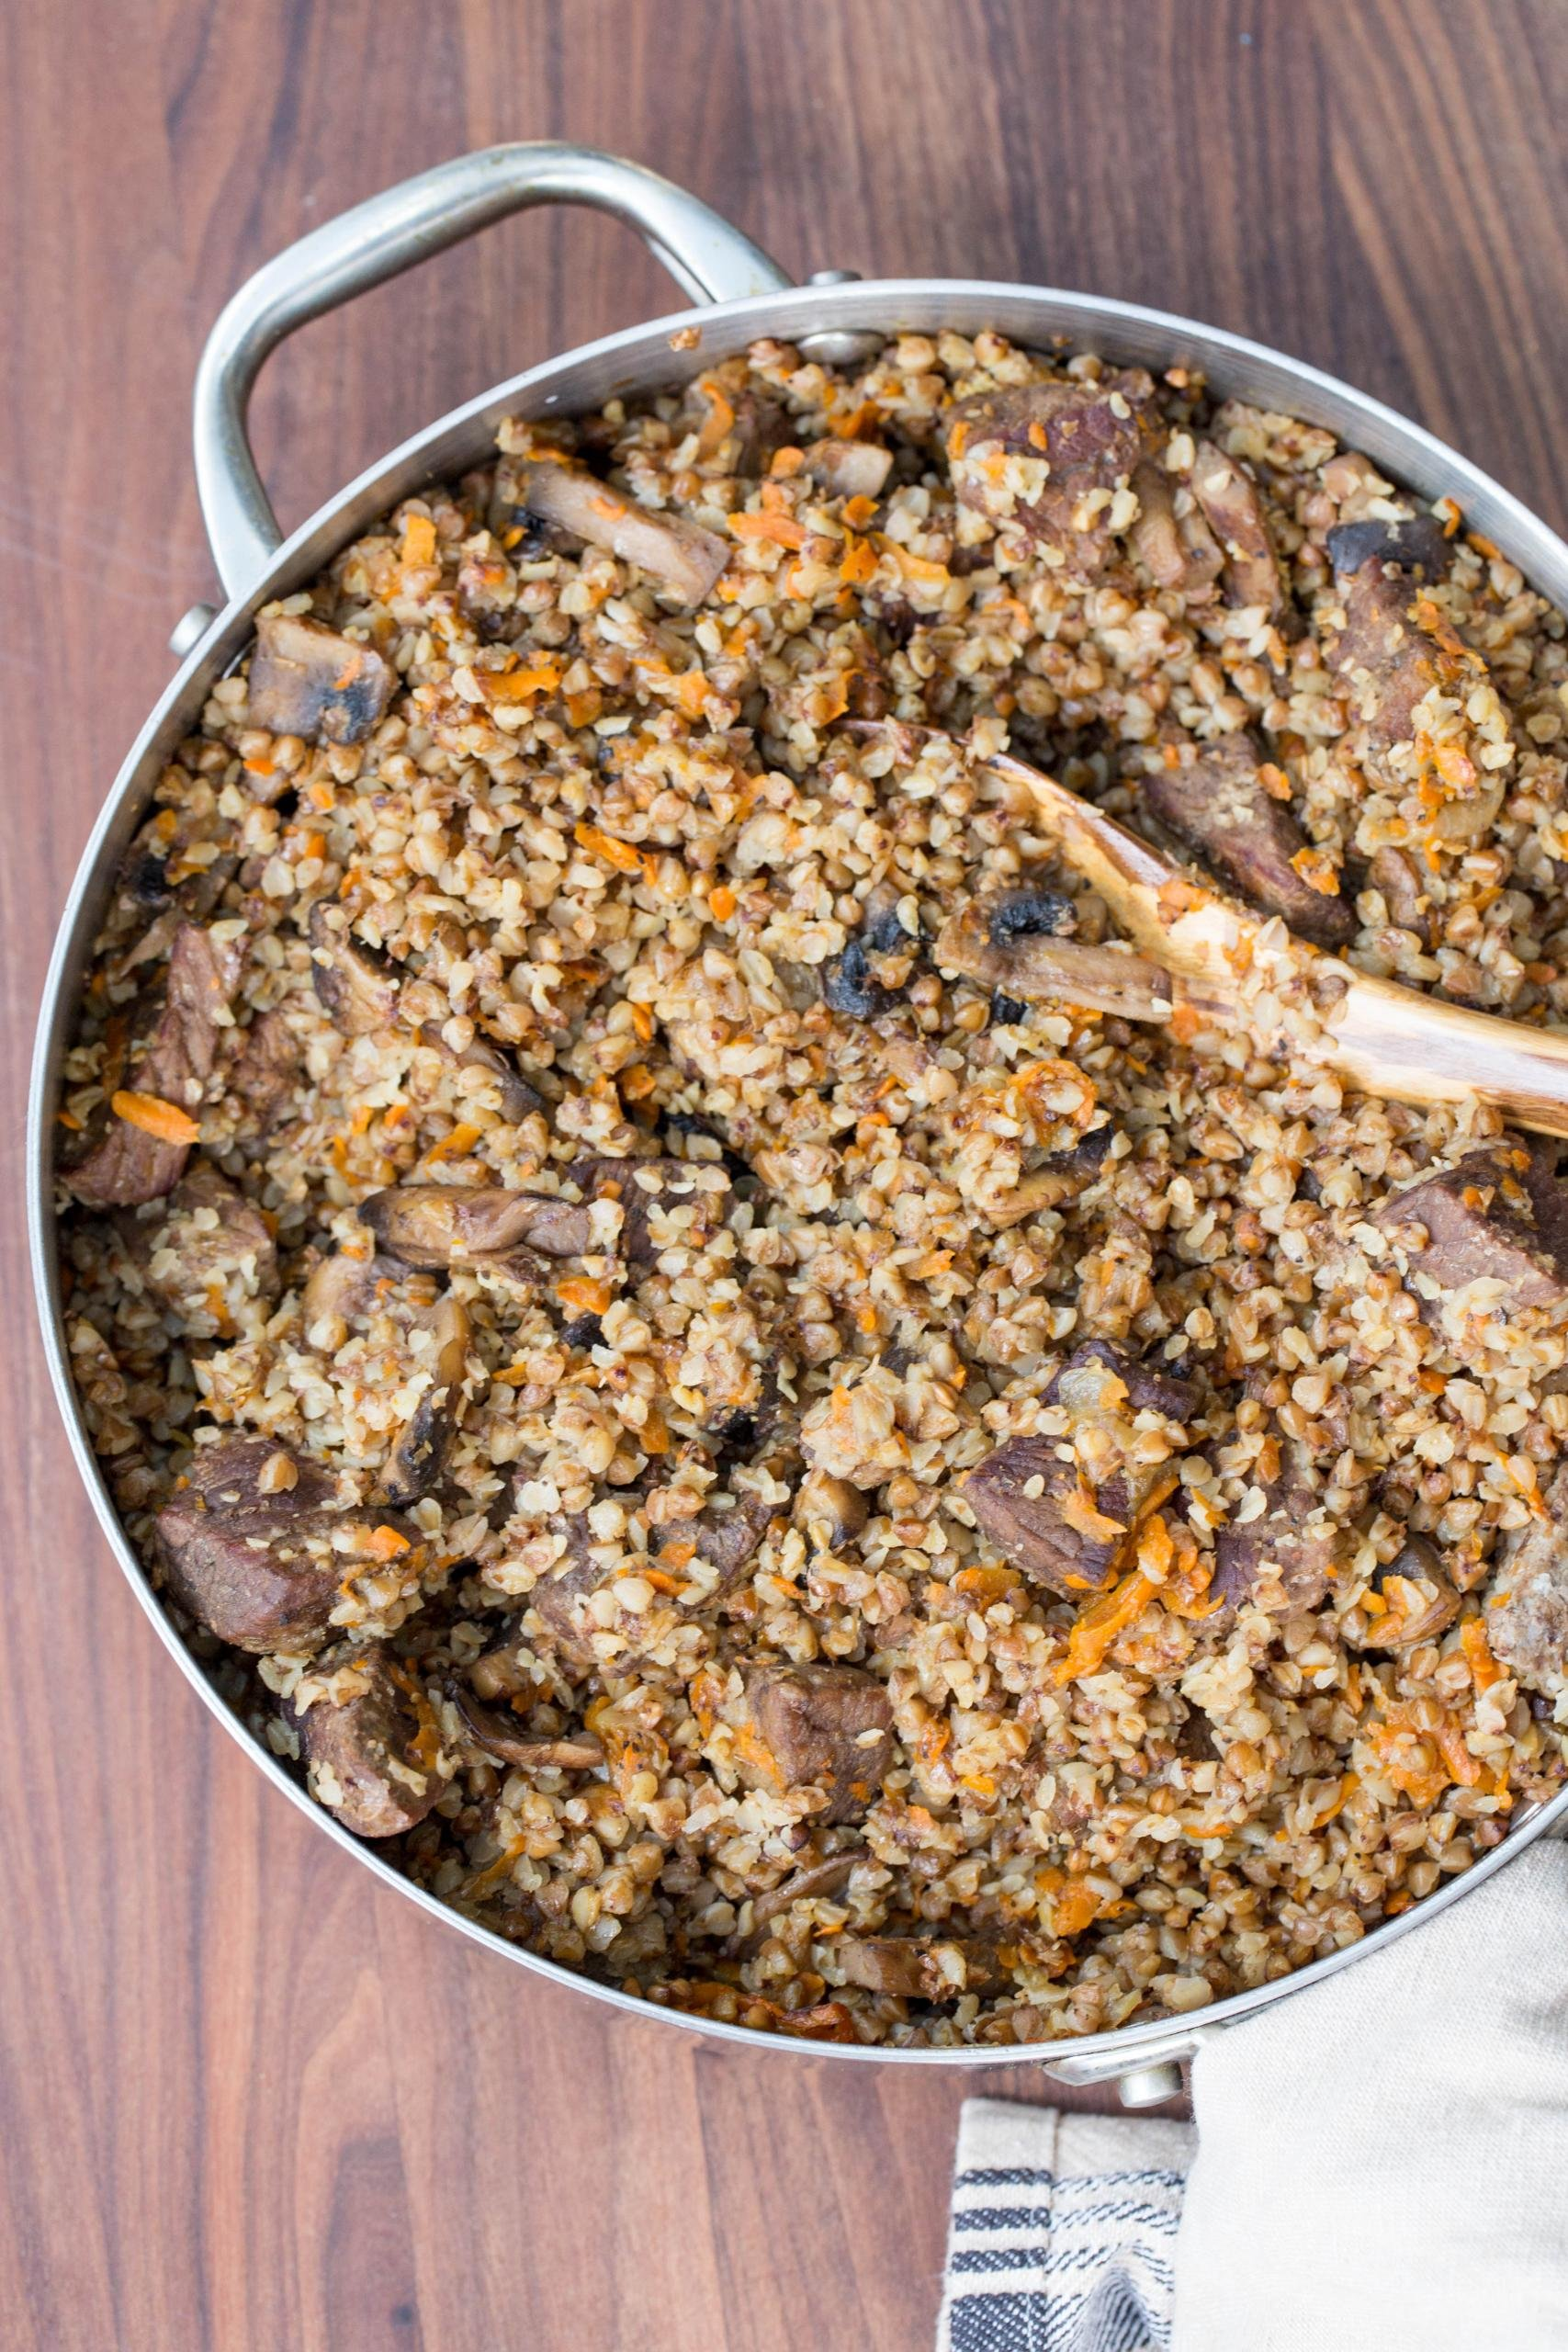 Stewed Buckwheat and Beef in a deep skillet